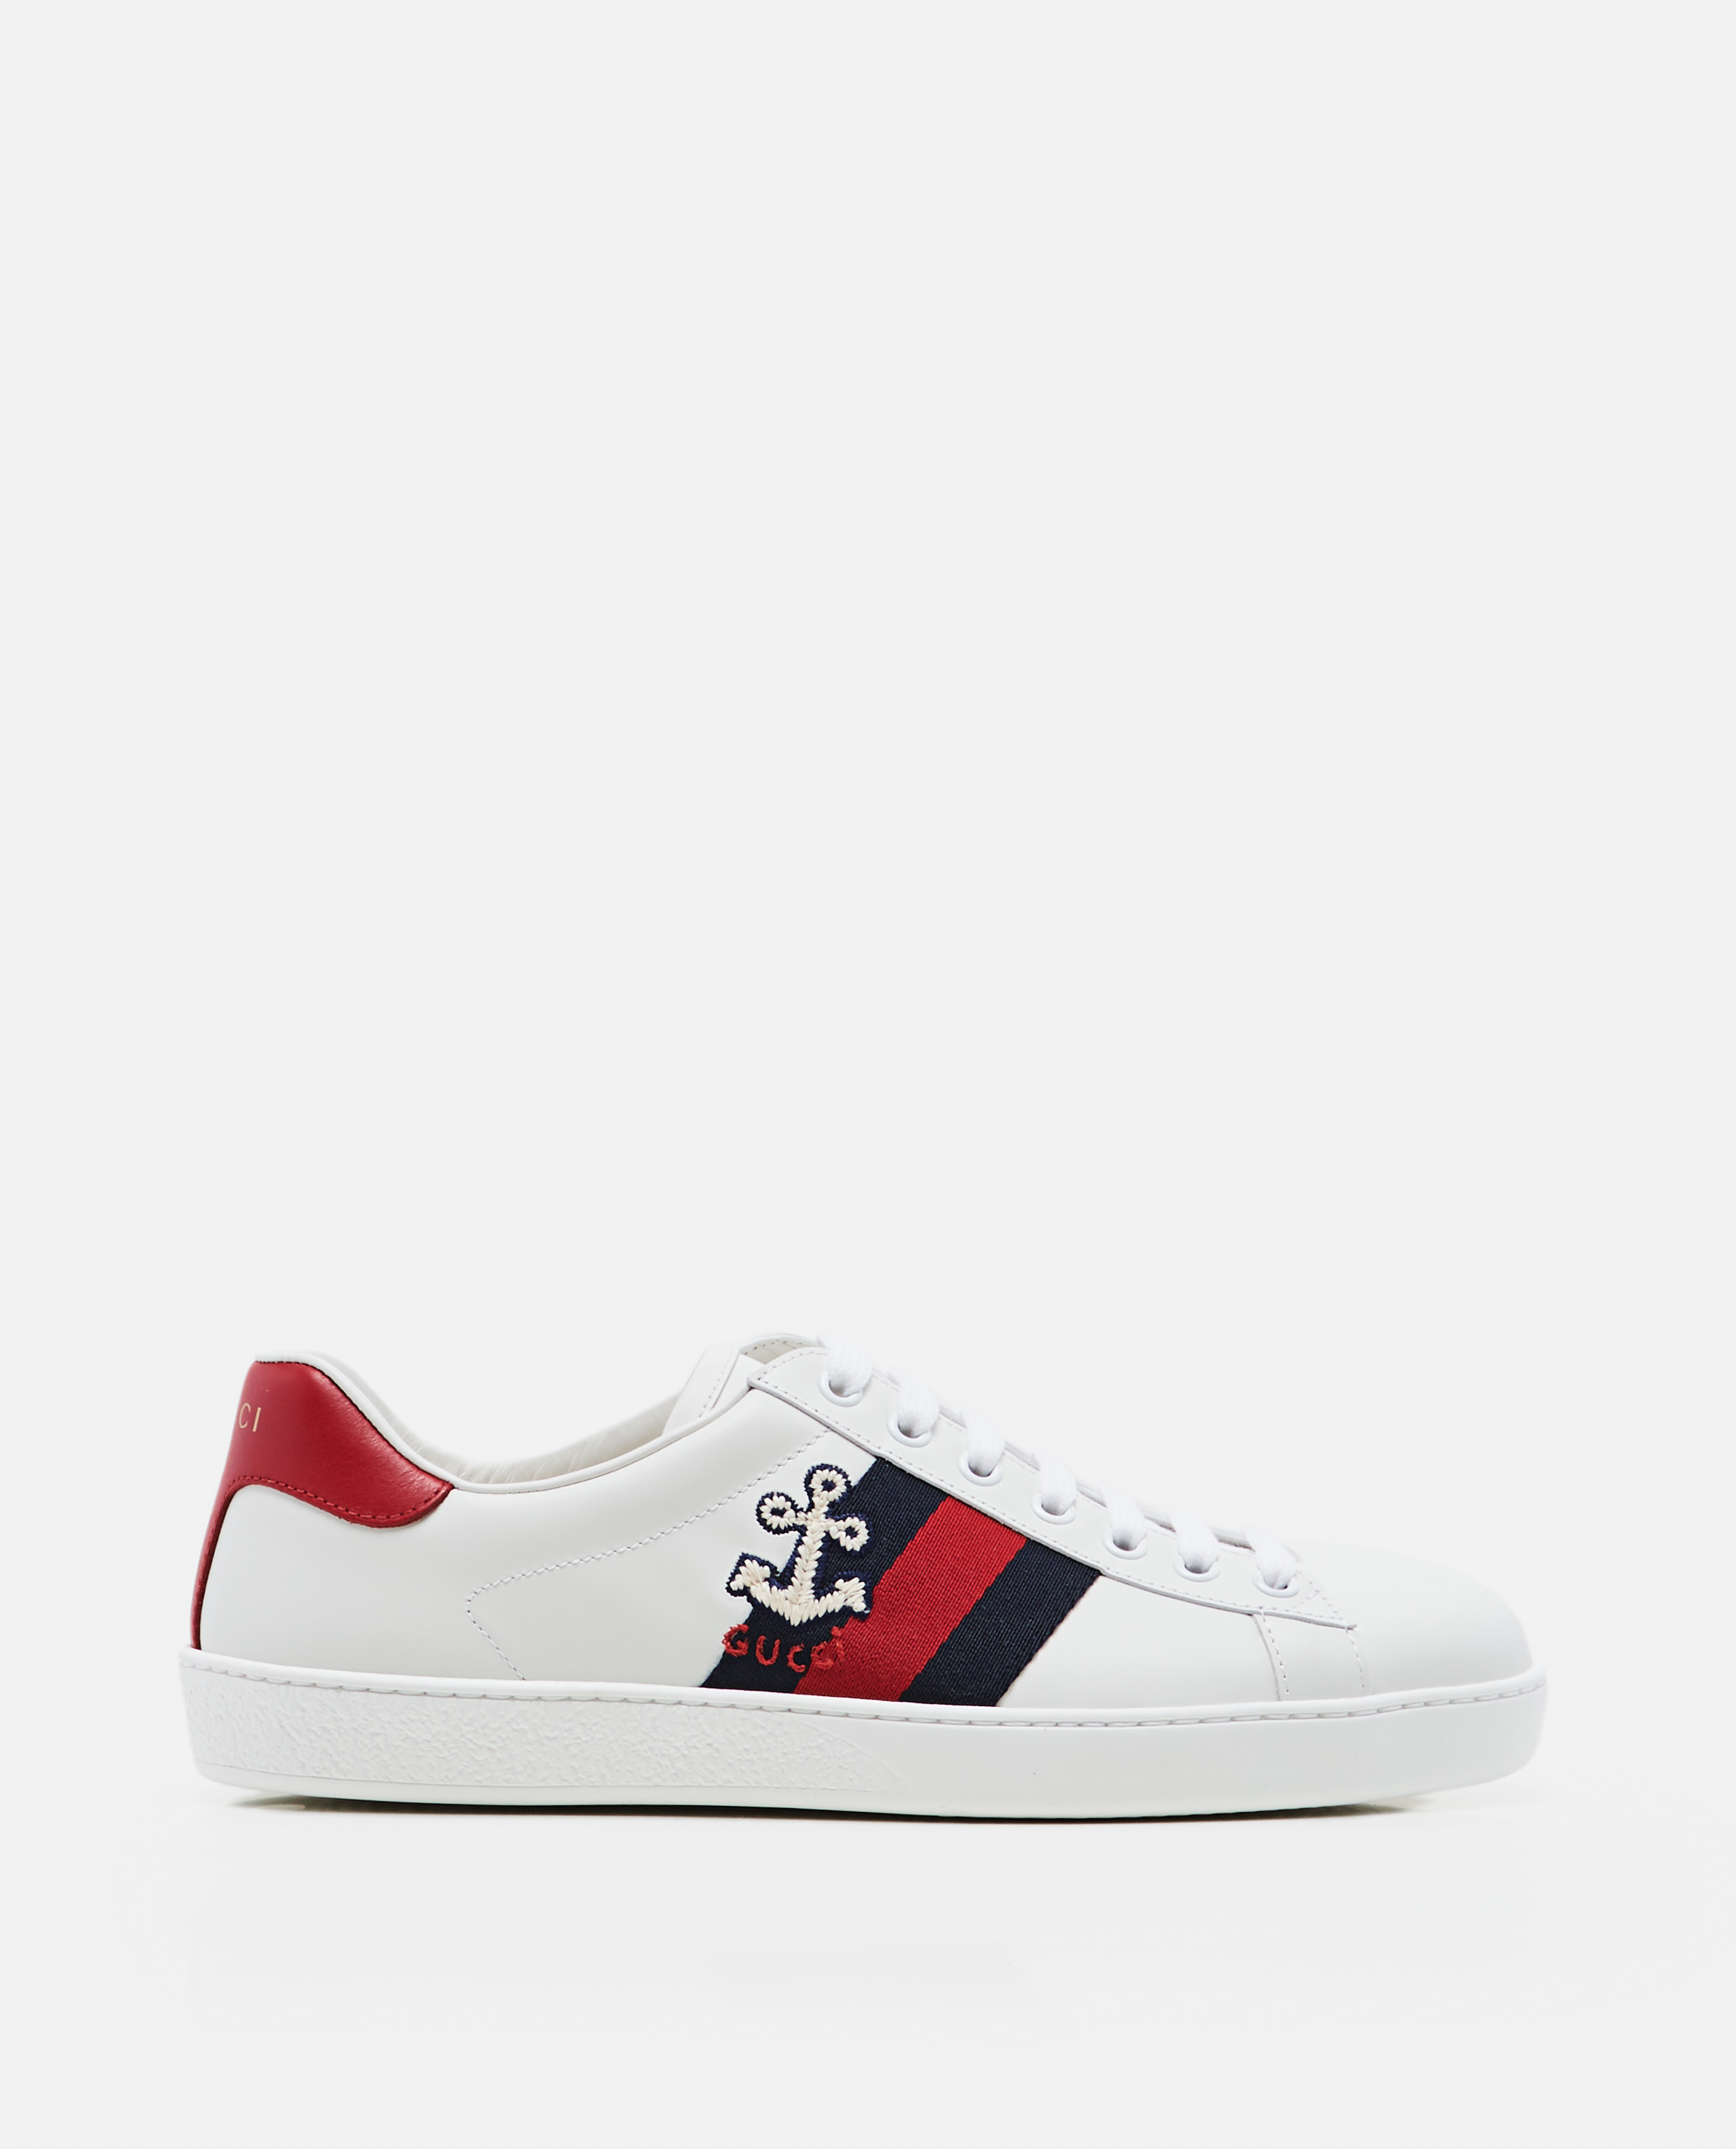 Ace embroidered mens sneaker